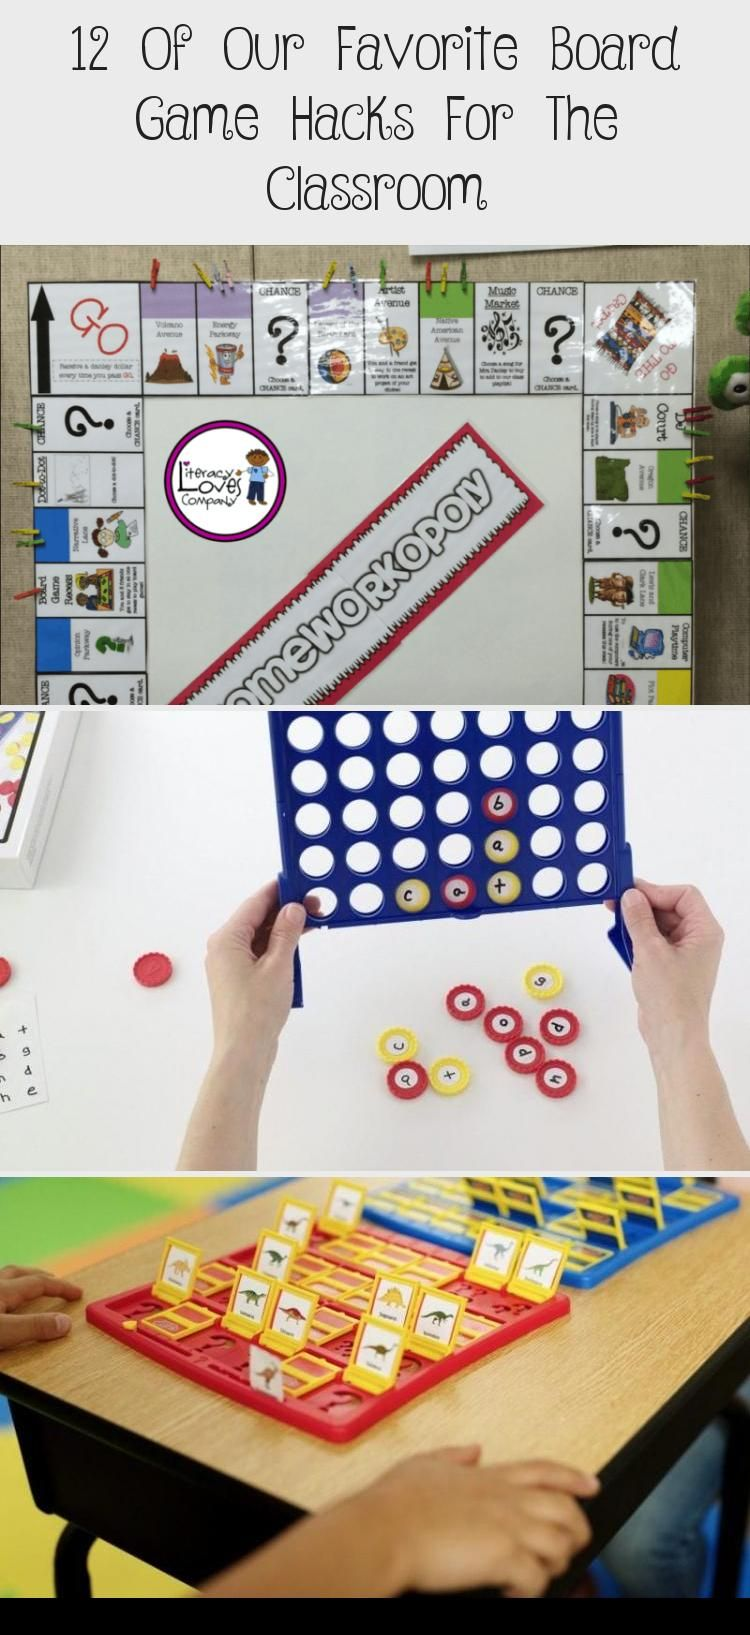 12 of Our Favorite Board Game Hacks for the Classroom. Practice curriculum and have fun at the same